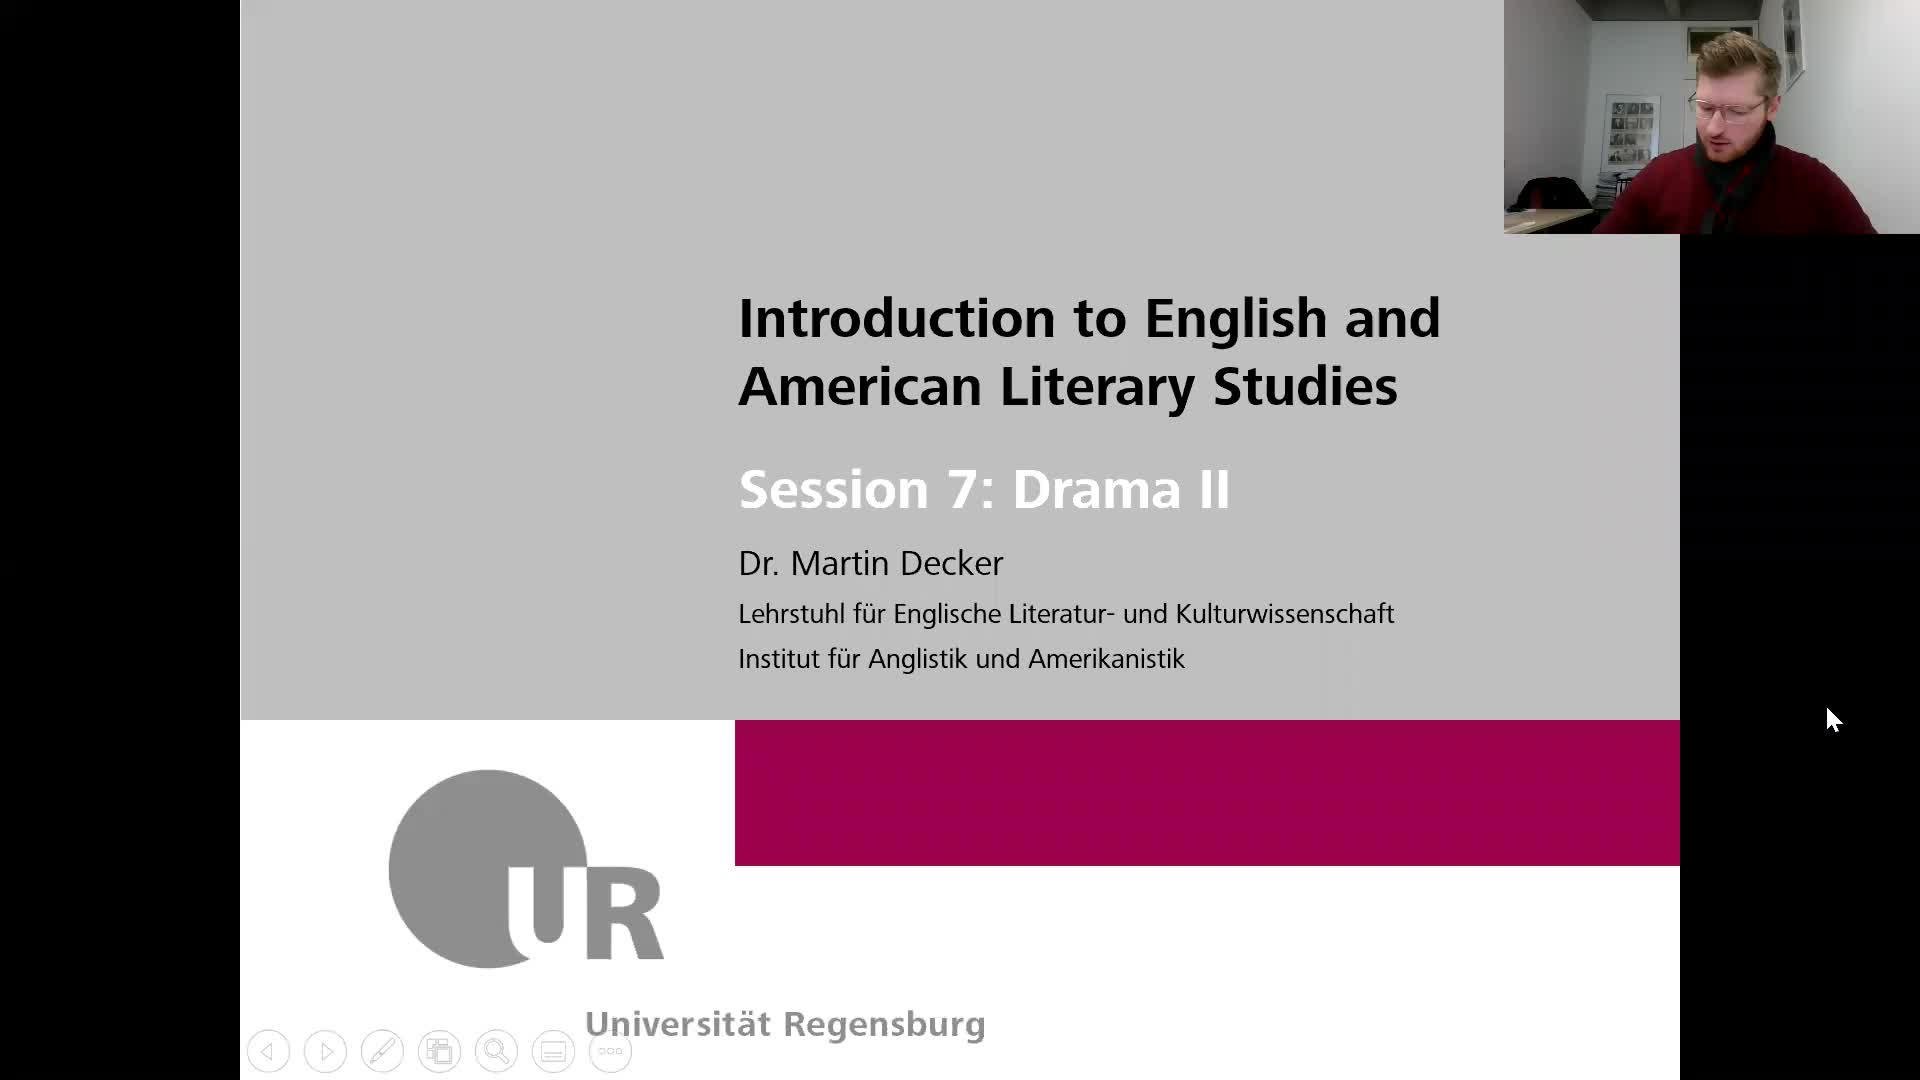 Introduction to English and American Literary Studies - LECTURE - Session 7